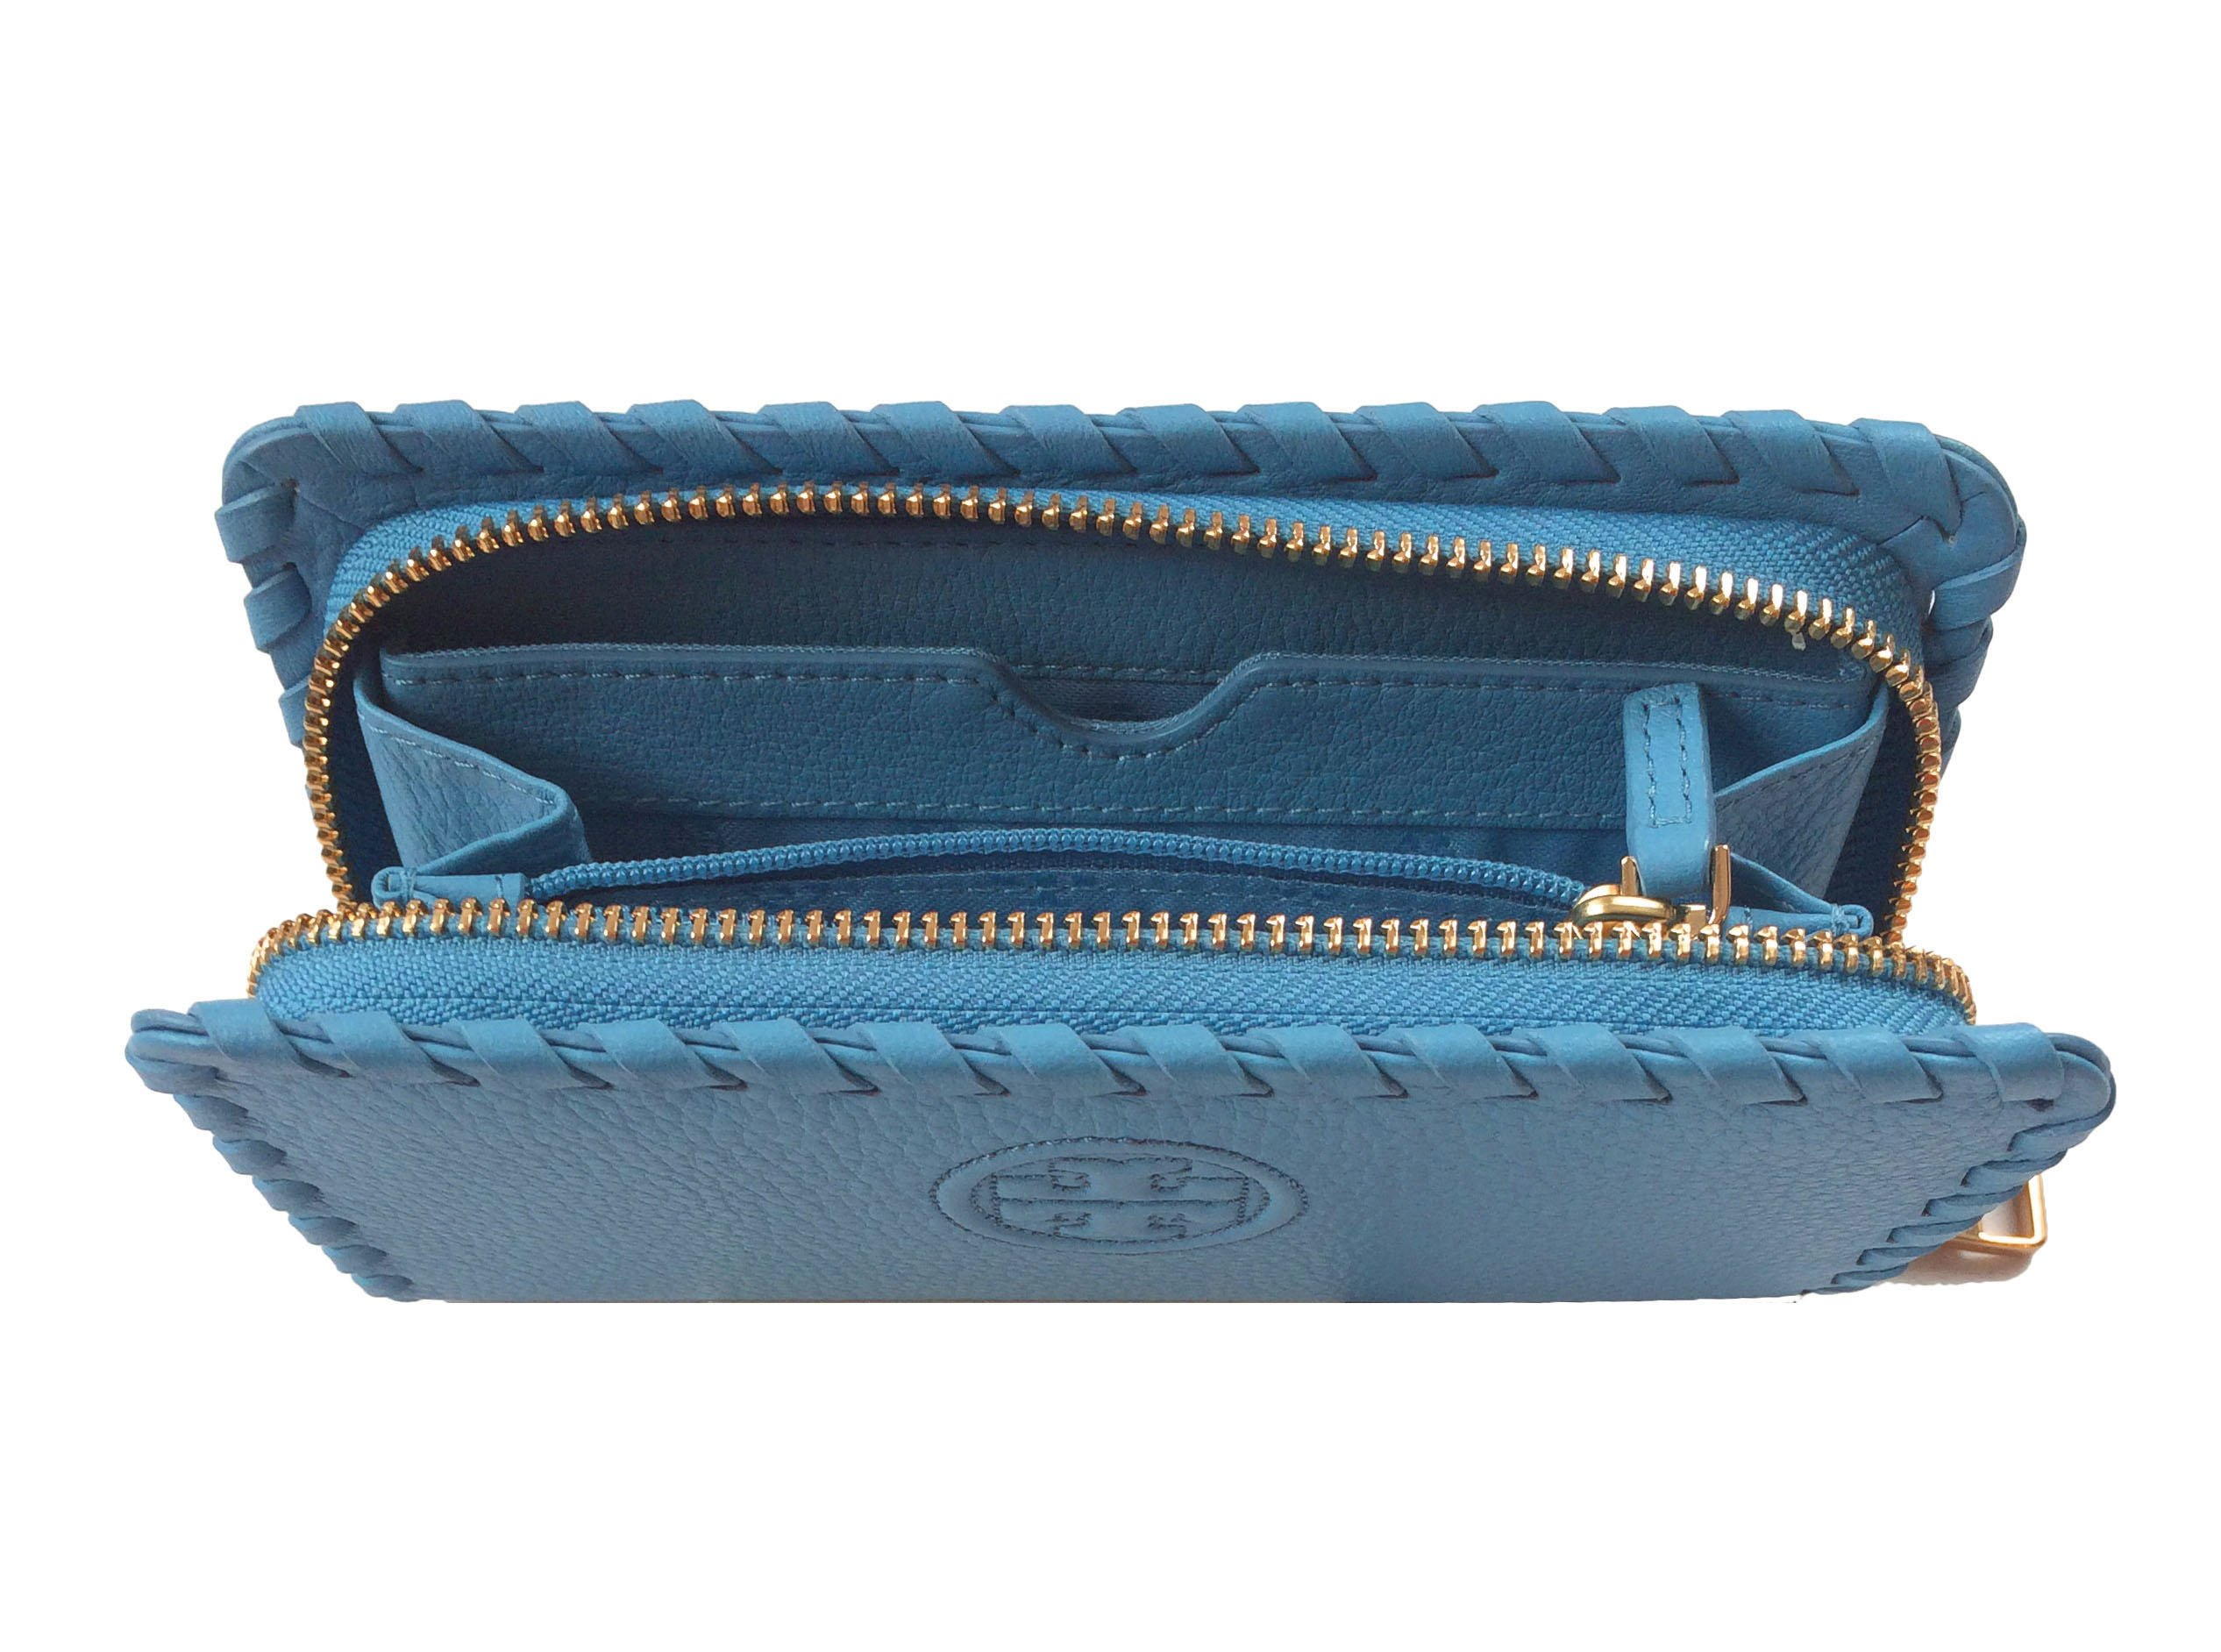 Tory Burch Marion Leather Smartphone Wristlet (Montego Blue) by Tory Burch (Image #3)